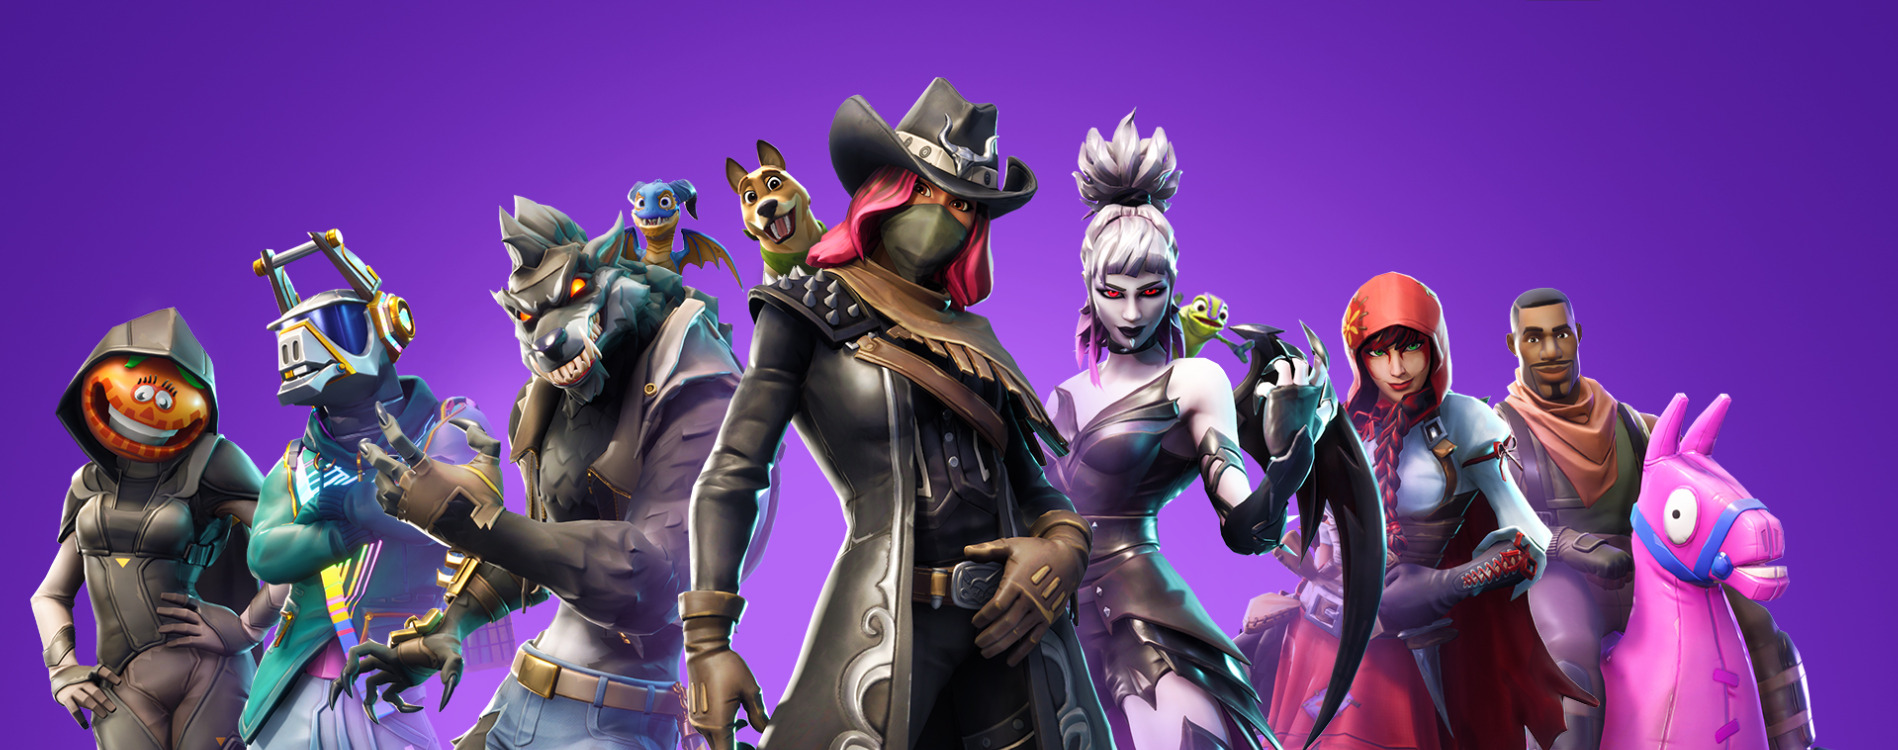 Fortnite Season 6 Darkness Rises Revealed New Trailer Patch